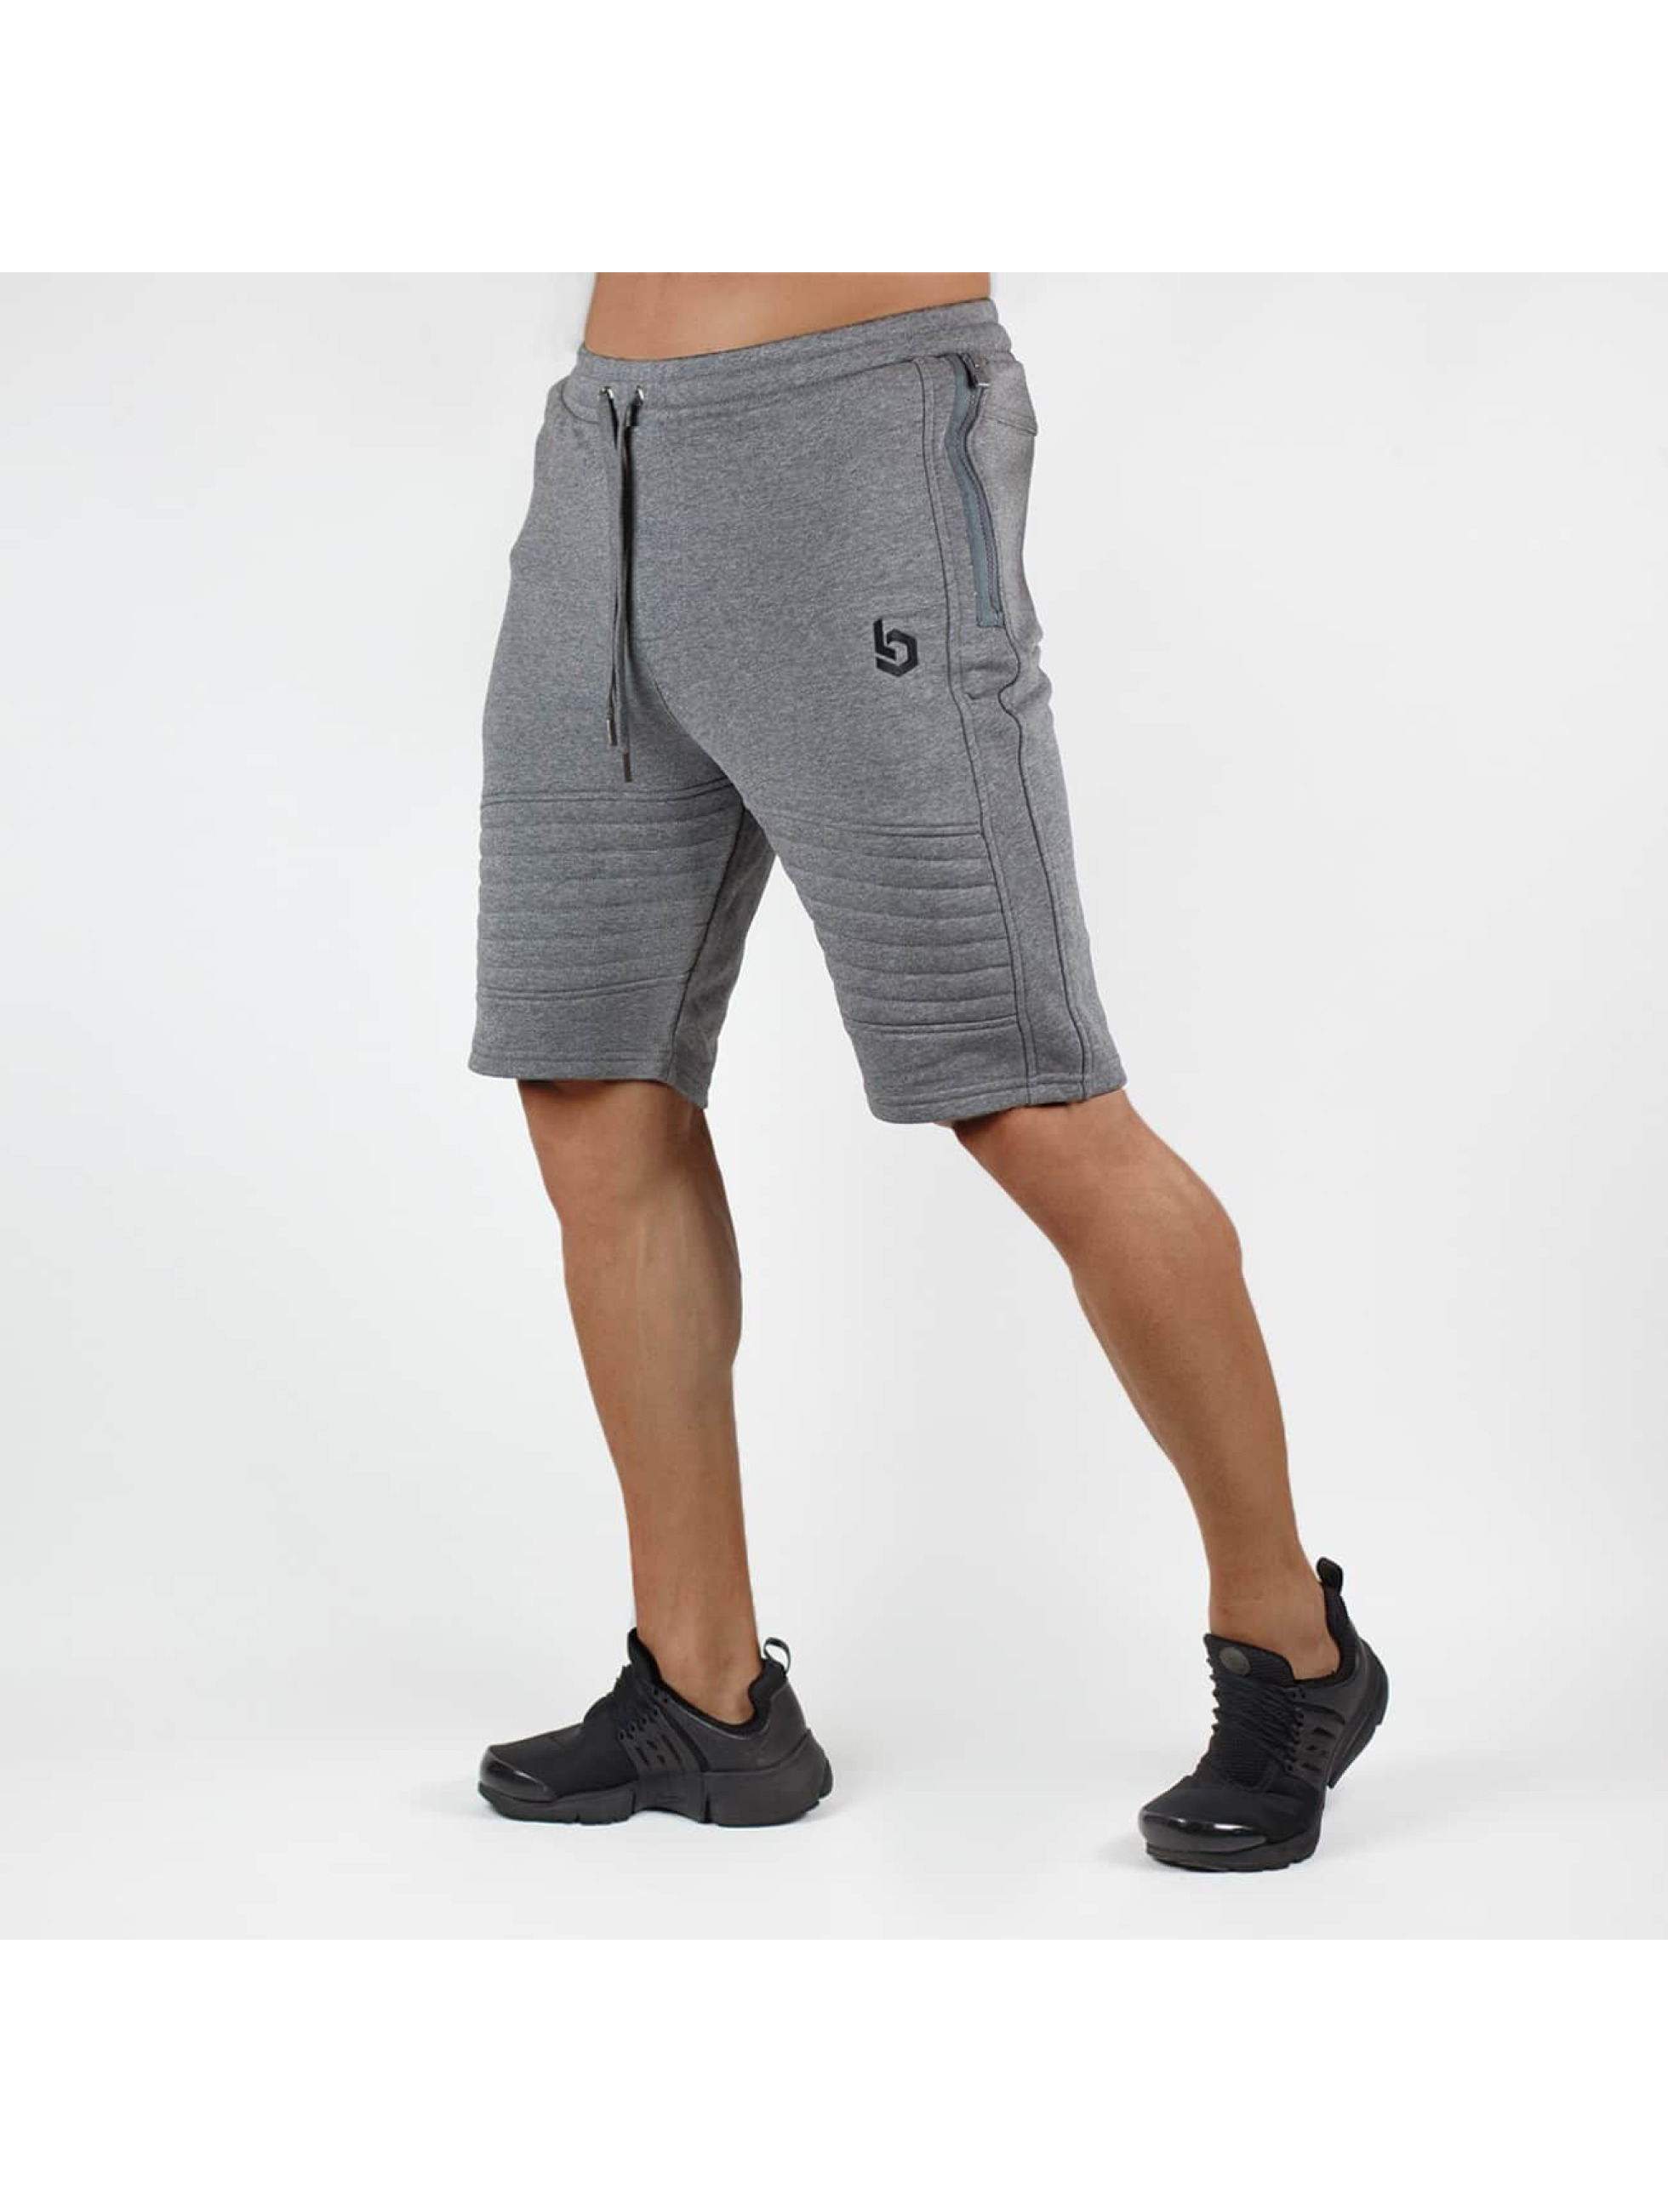 Beyond Limits Shorts Baseline grigio